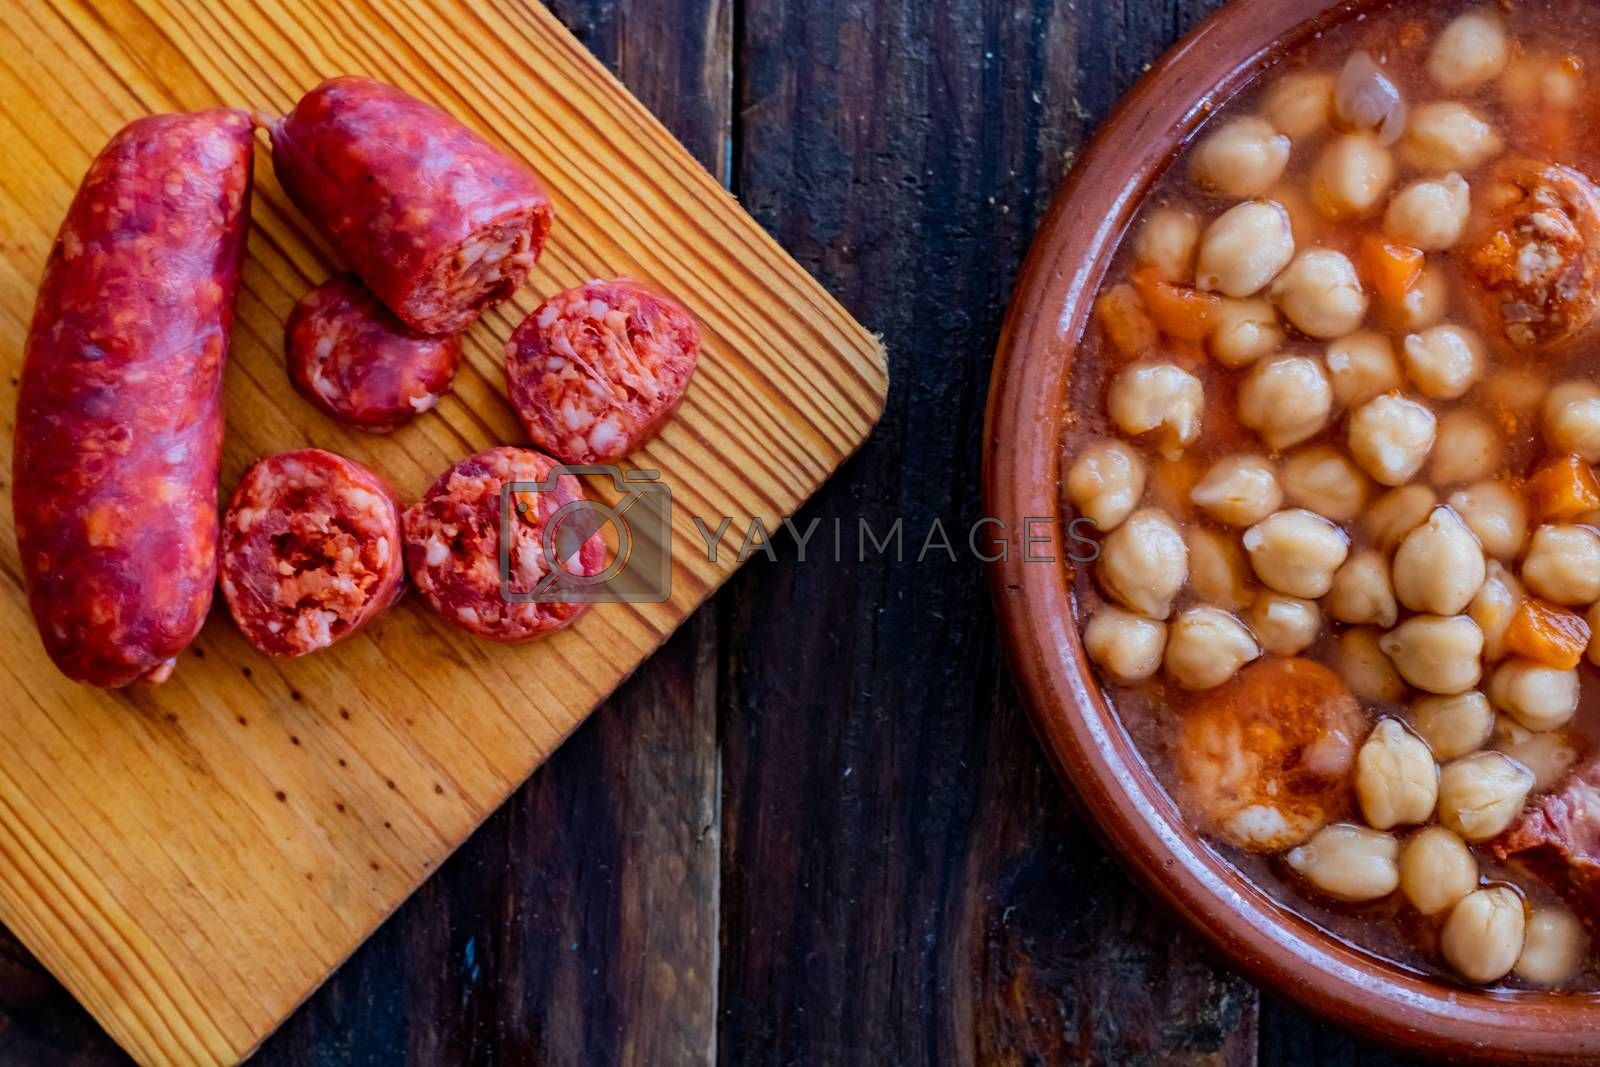 Chickpea dish and ingredients in composition on wooden background